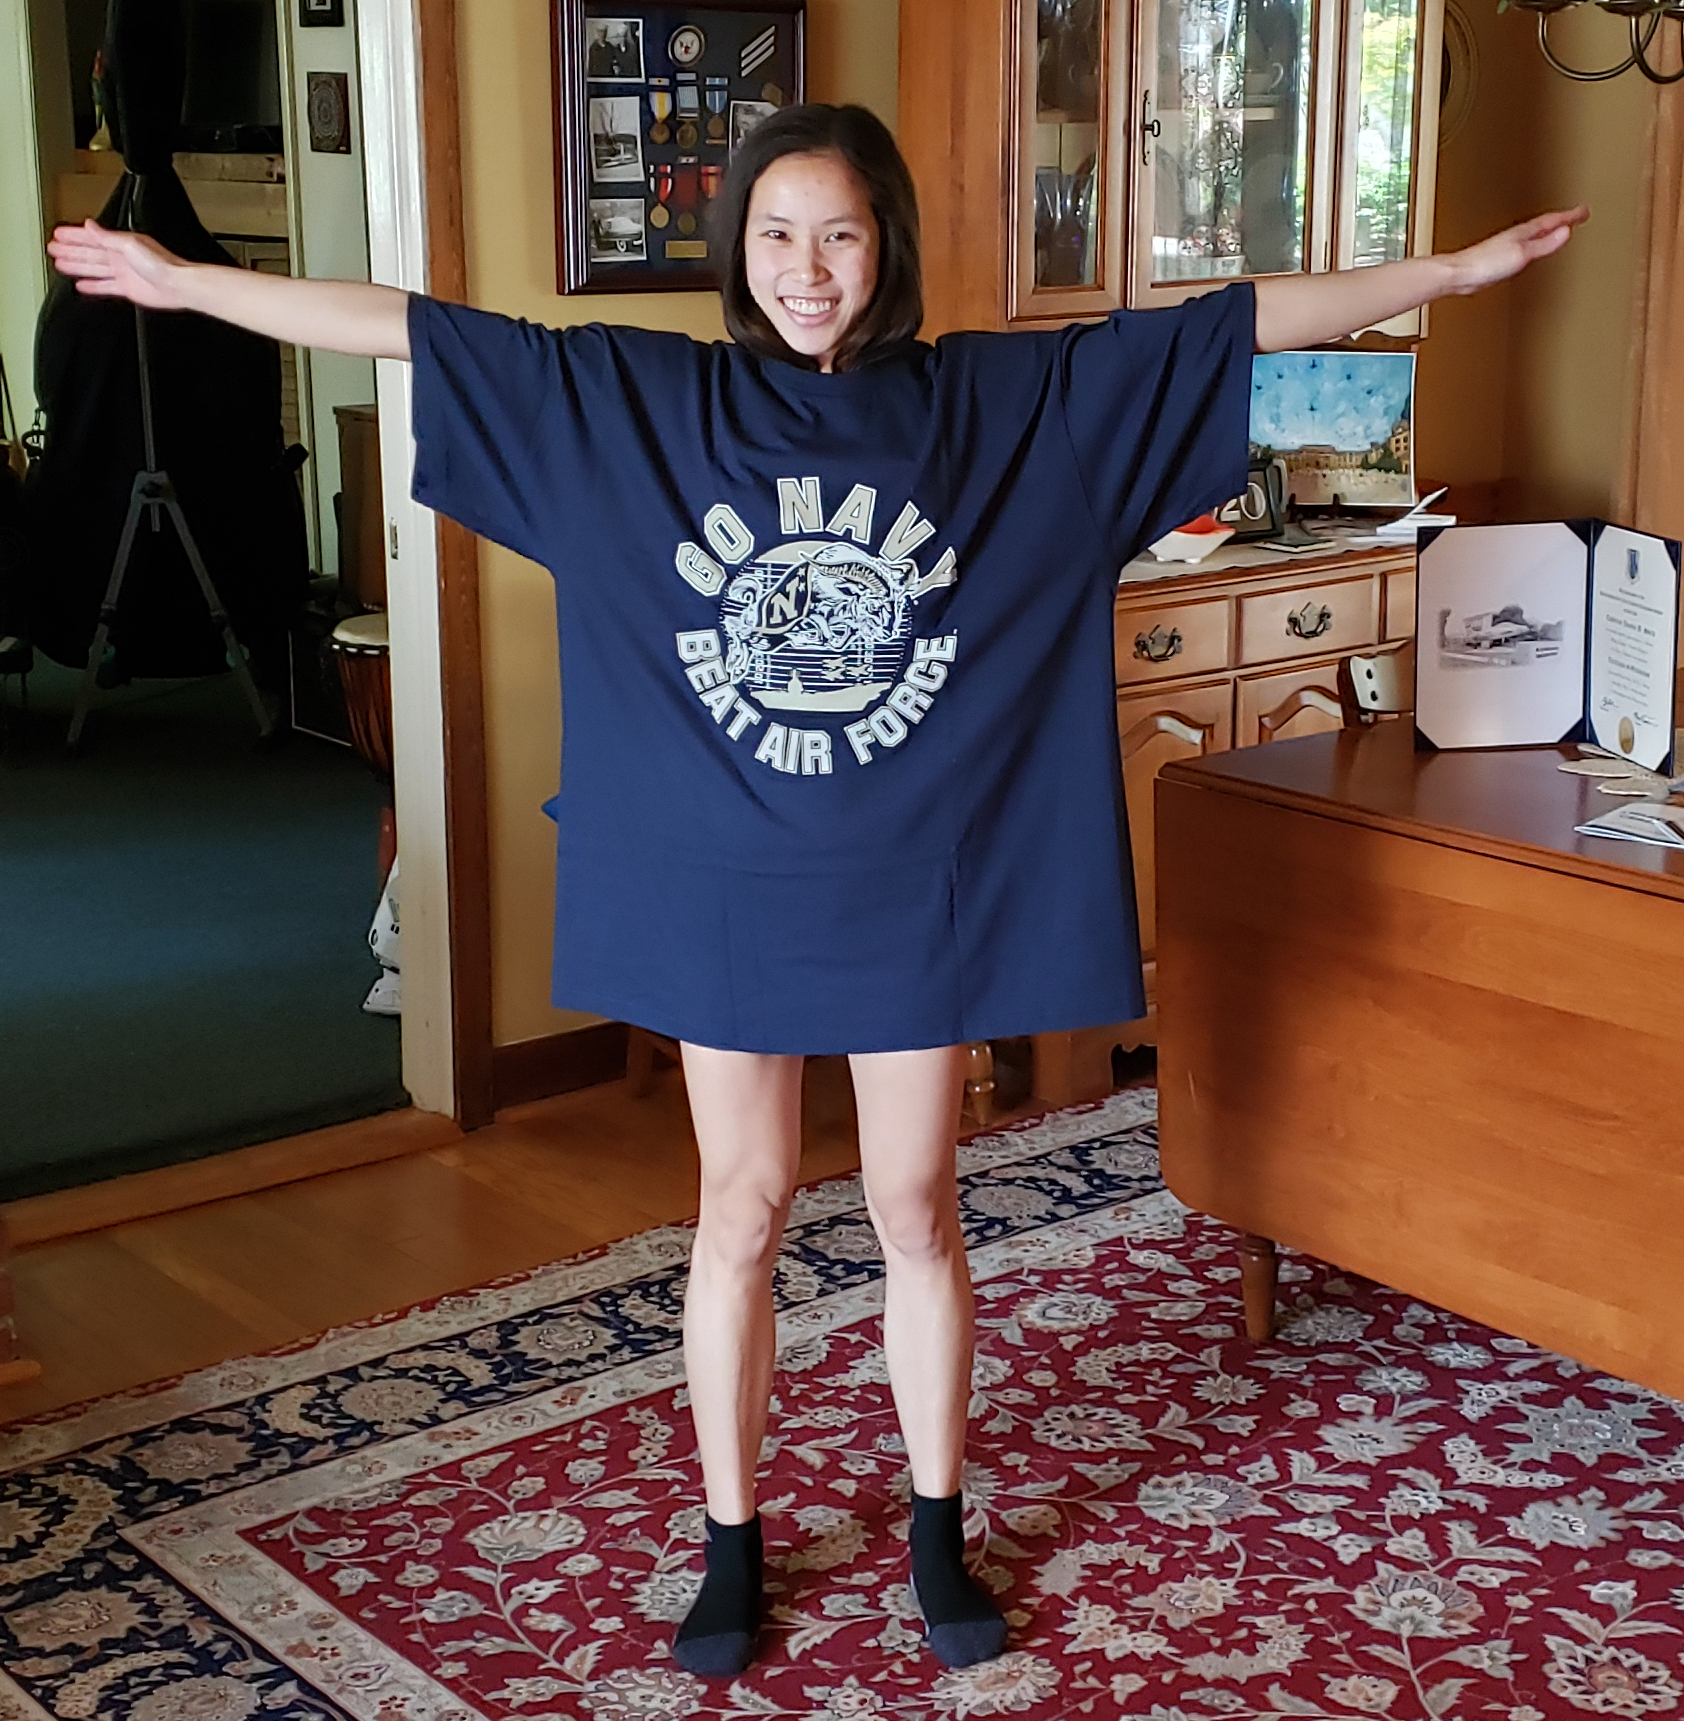 From Mid Sib to Cadet – join me on a new adventure